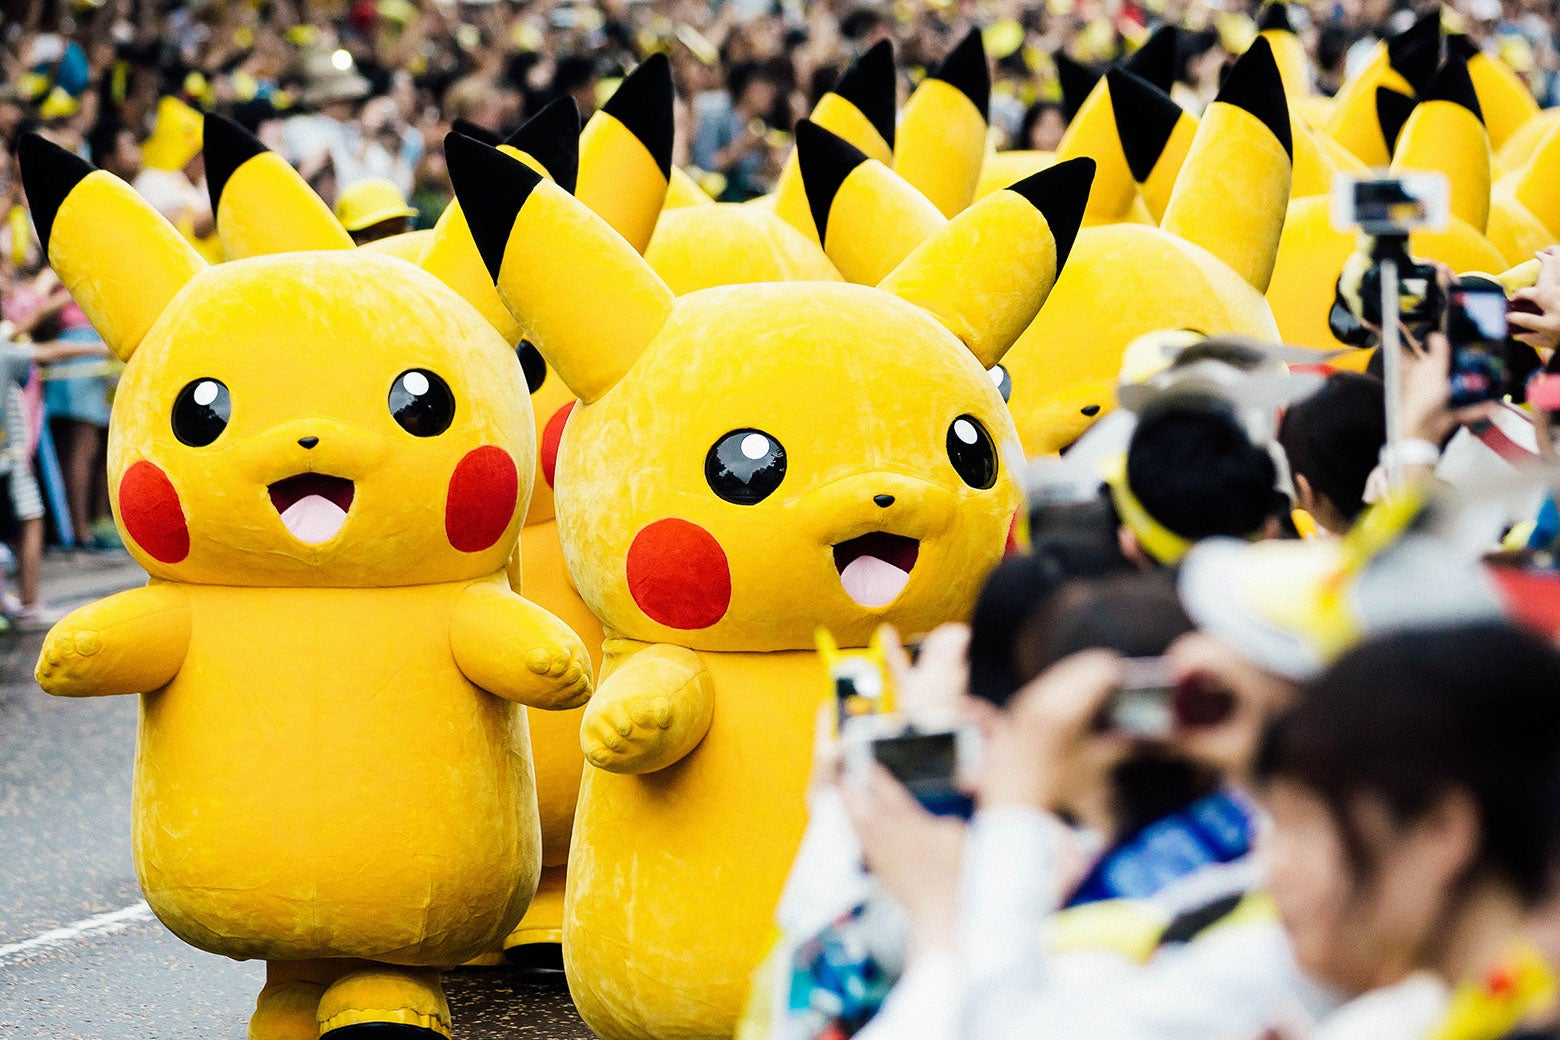 Performers dressed as Pikachu march during a parade held as part of an event hosted by The Pokemon Co. on Aug. 14, 2017, in Yokohama, Kanagawa, Japan.